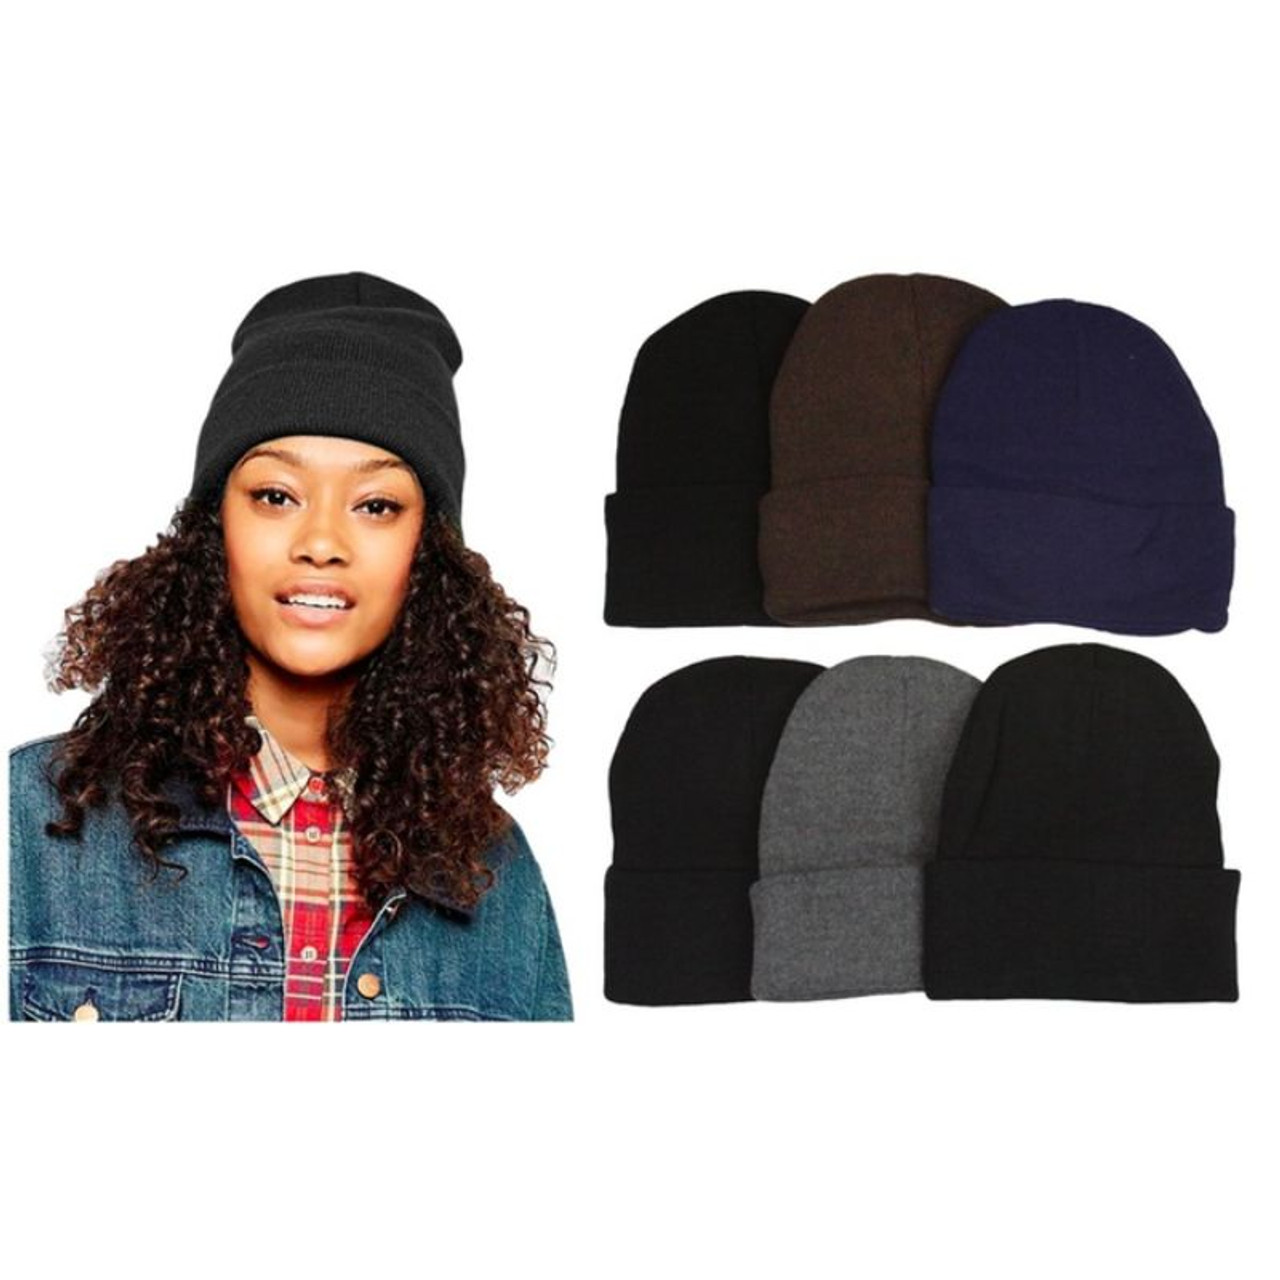 Unisex Warm Double-Layered Beanies - 6 Pack